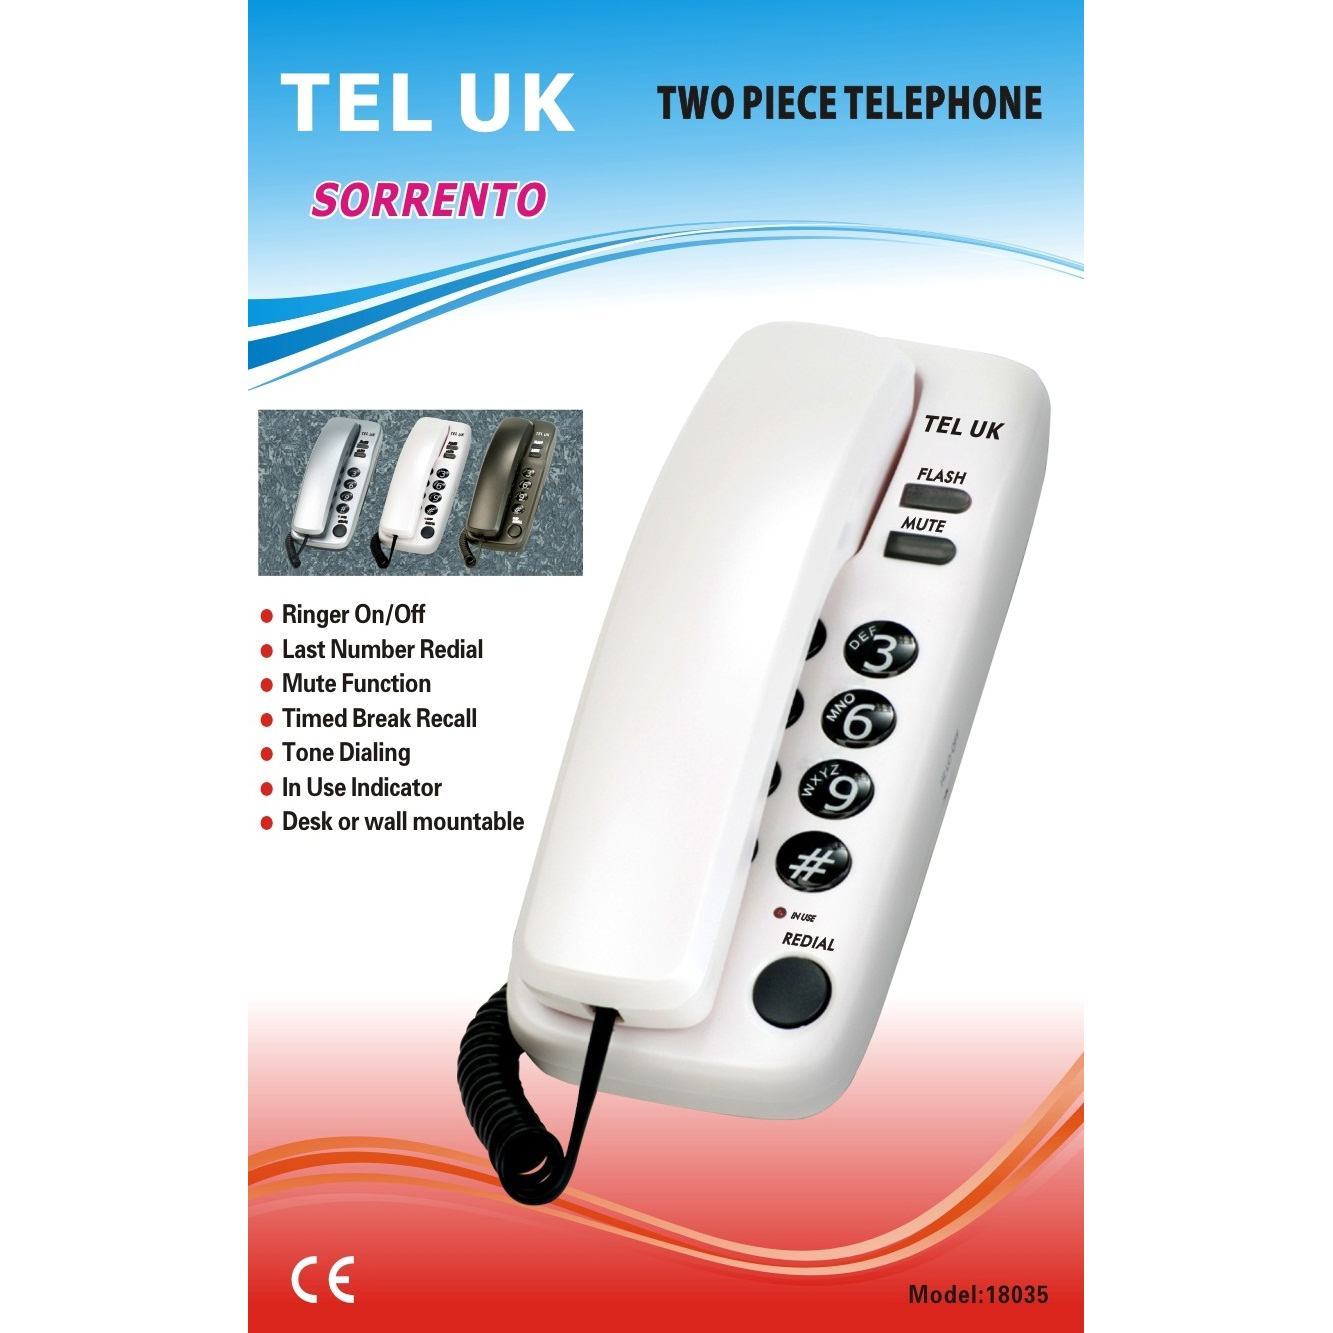 2 Pieces Desk & Wall Telephone (1)